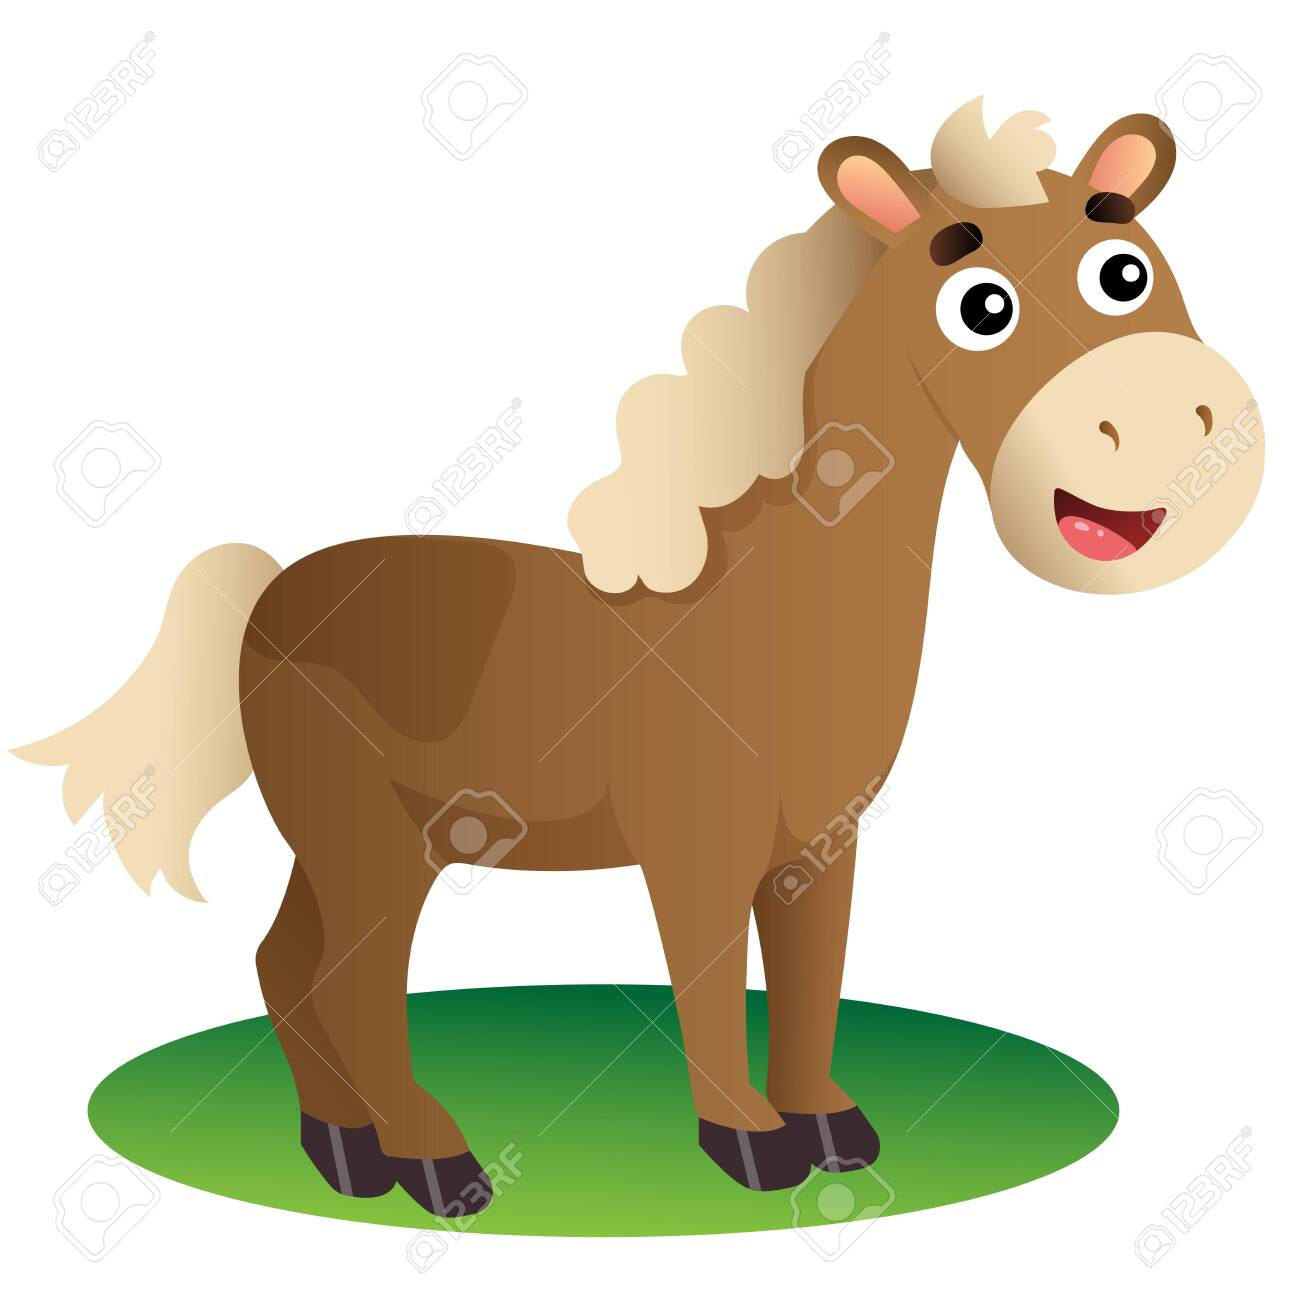 Color Image Of Cartoon Horse On White Background Farm Animals Royalty Free Cliparts Vectors And Stock Illustration Image 135118276